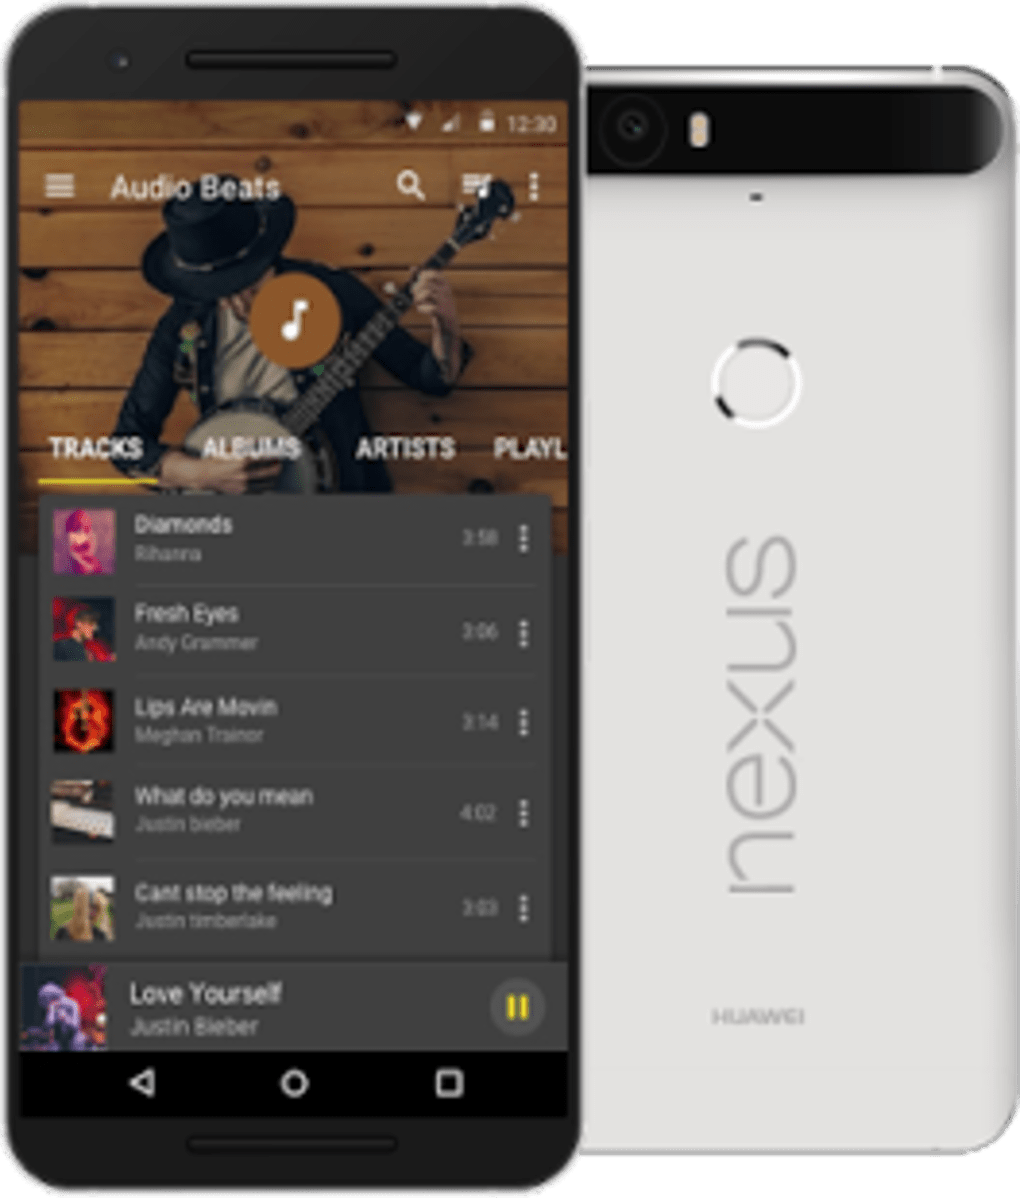 audio beats pro apk latest